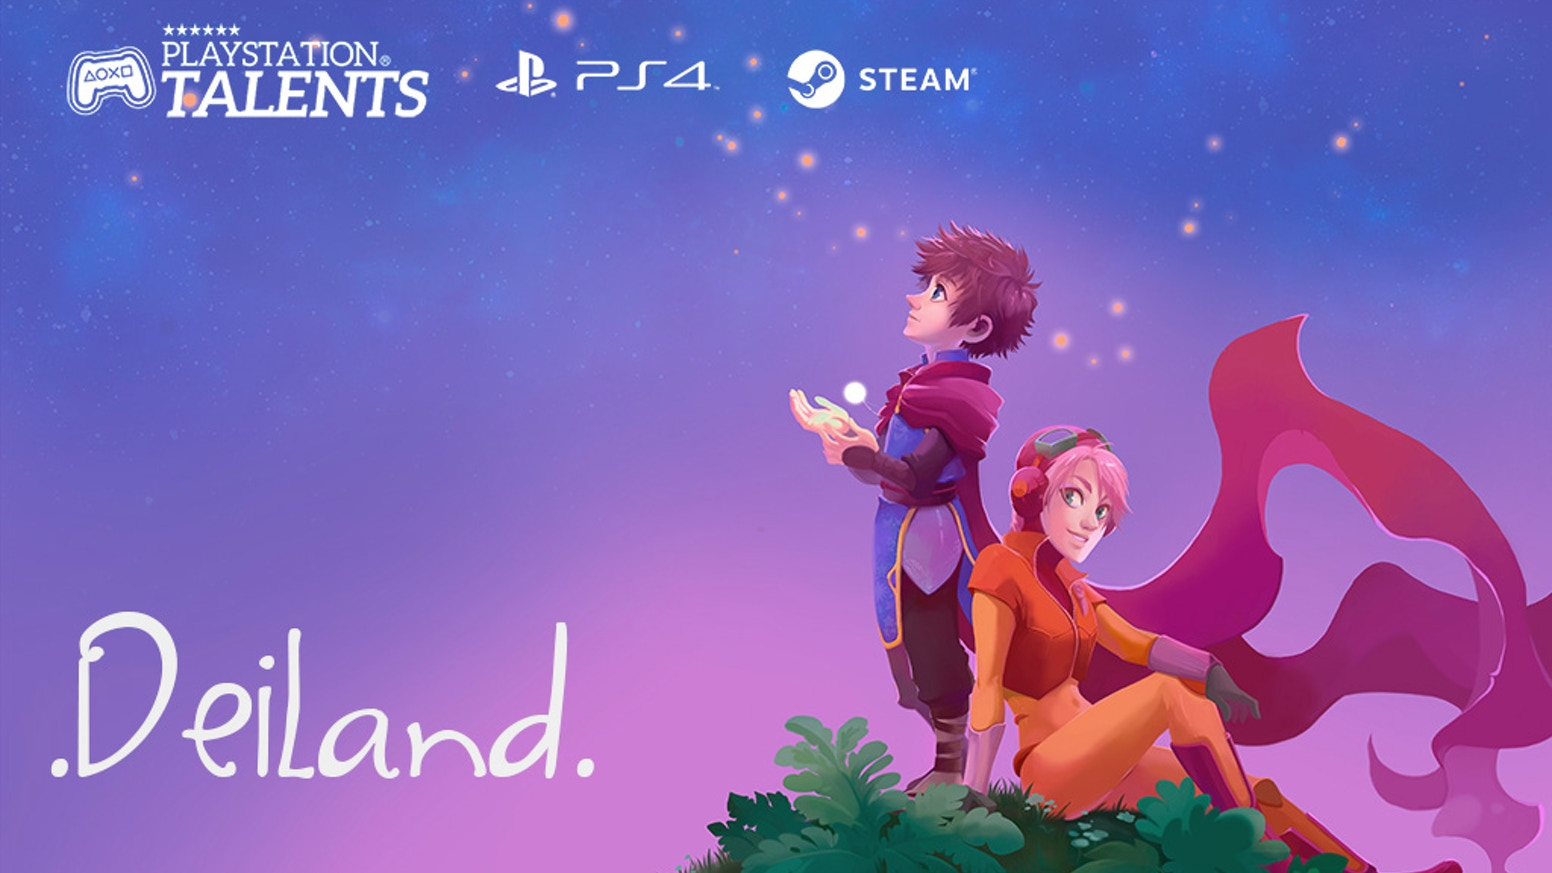 Deiland is an adventure and RPG game with some special sandbox mechanics farming, crafting, building, combat and more on PC and PS4